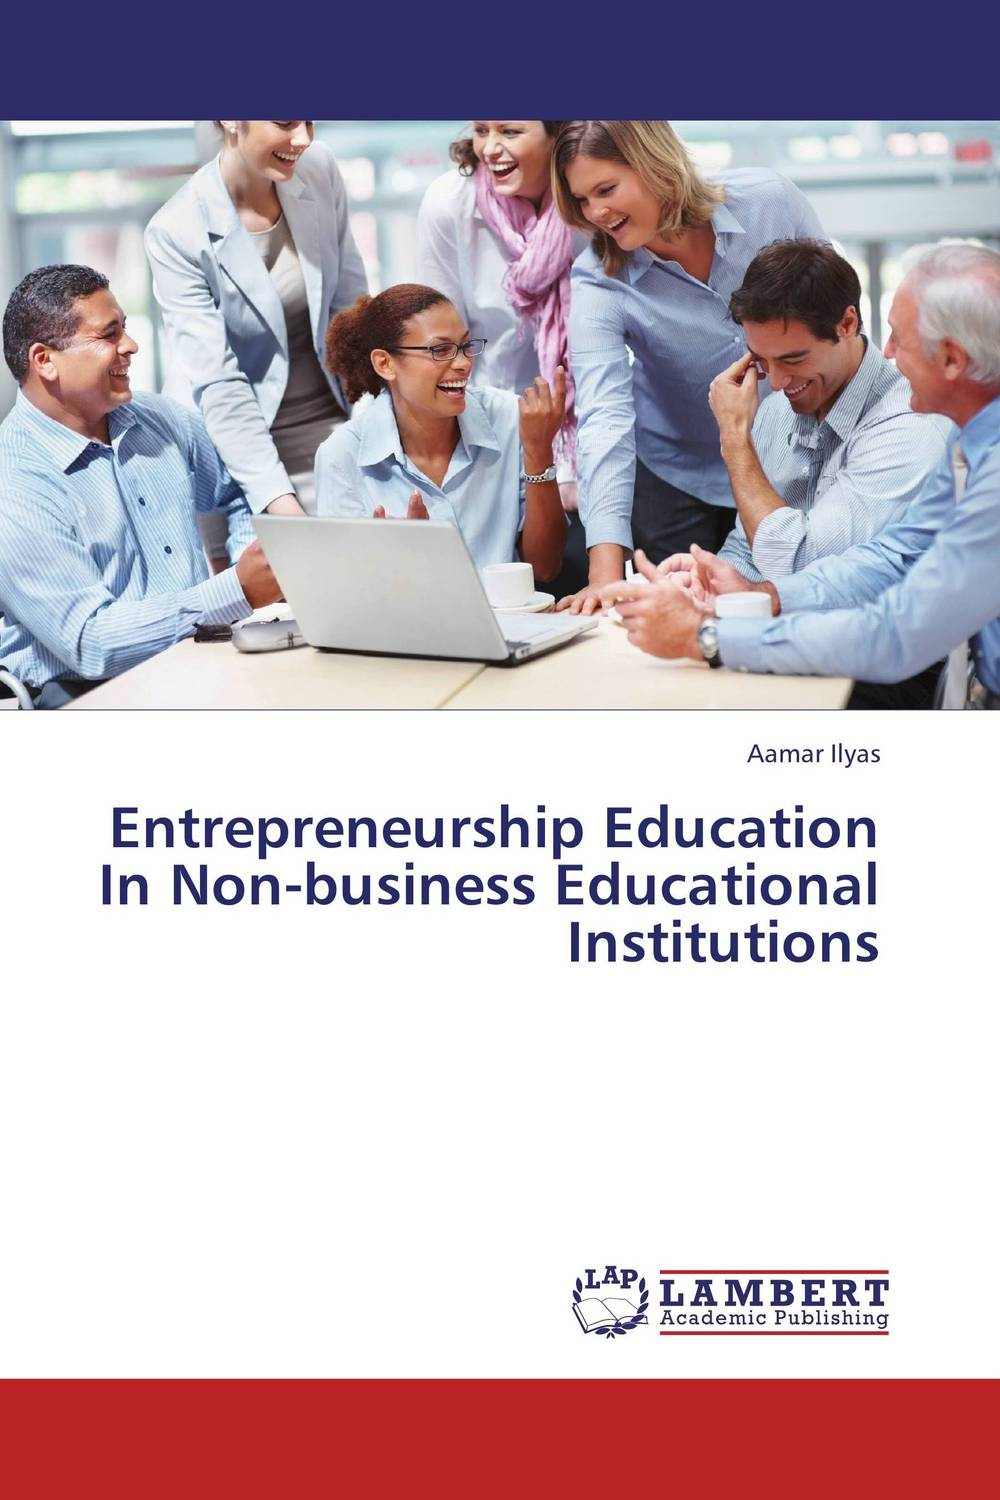 Entrepreneurship Education In Non-business Educational Institutions n giusti diffuse entrepreneurship and the very heart of made in italy for fashion and luxury goods